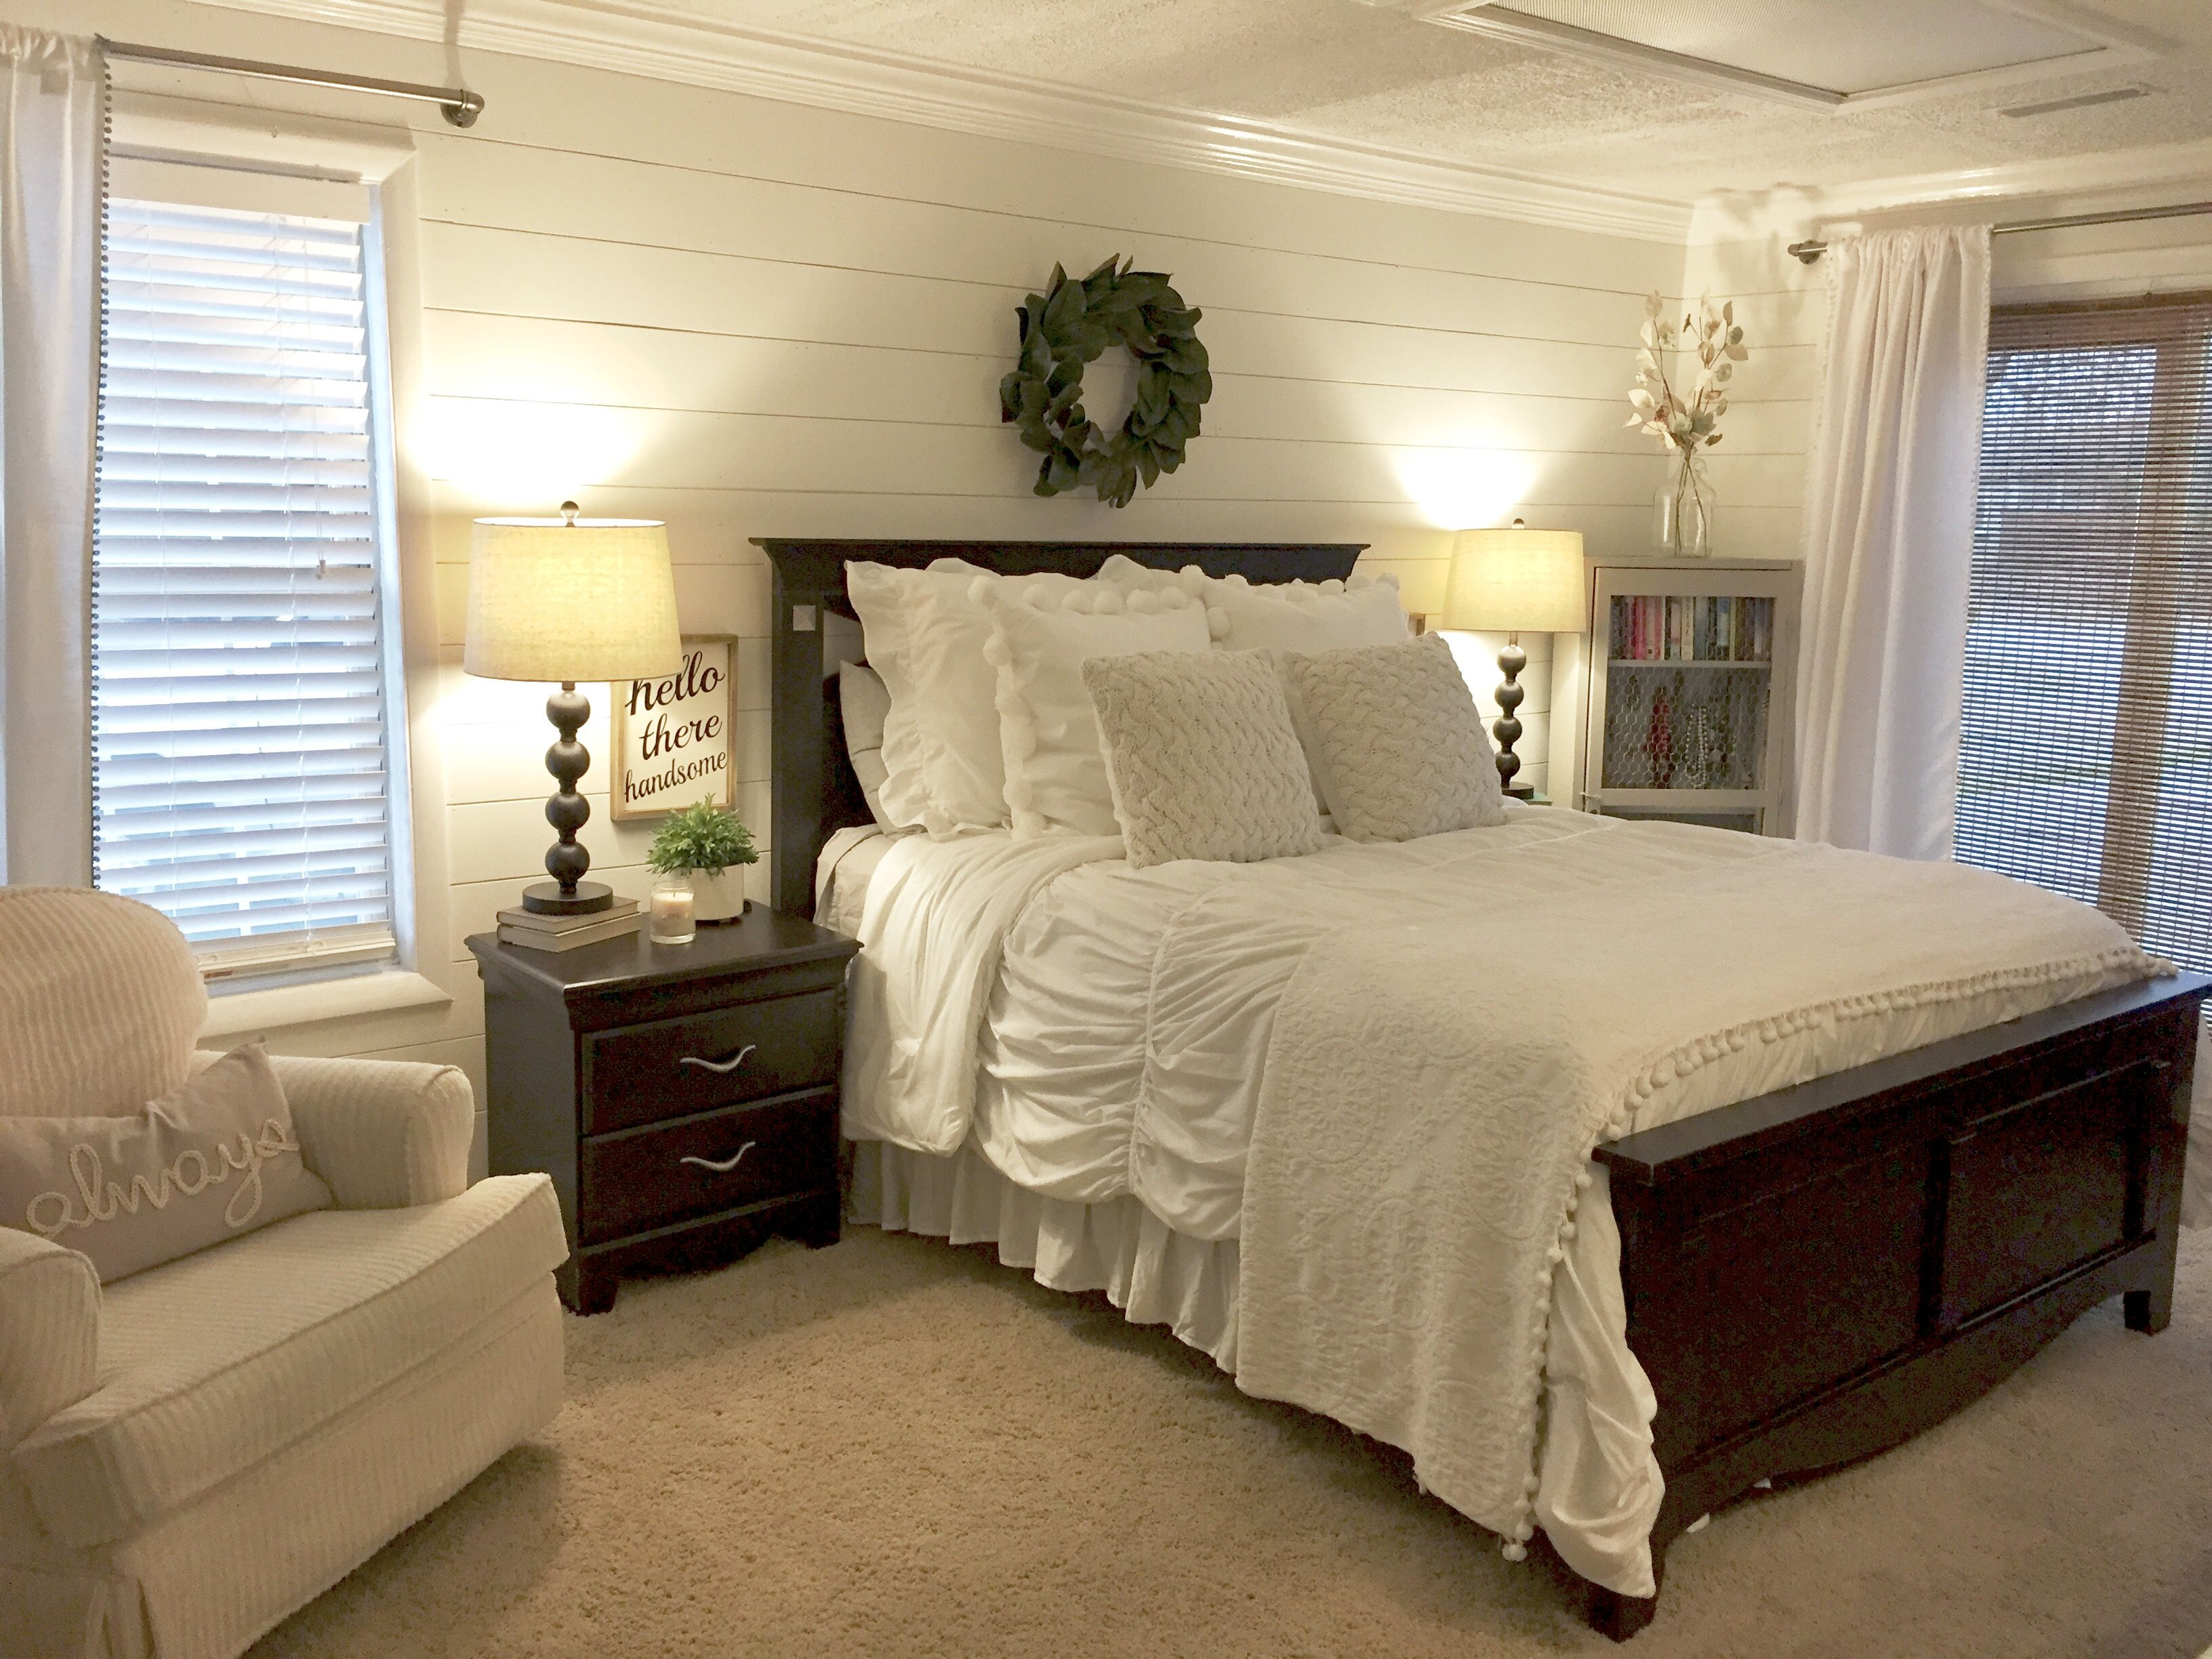 Shiplap Bedroom Walls With Farmhouse Charm Magnolia Wreath And